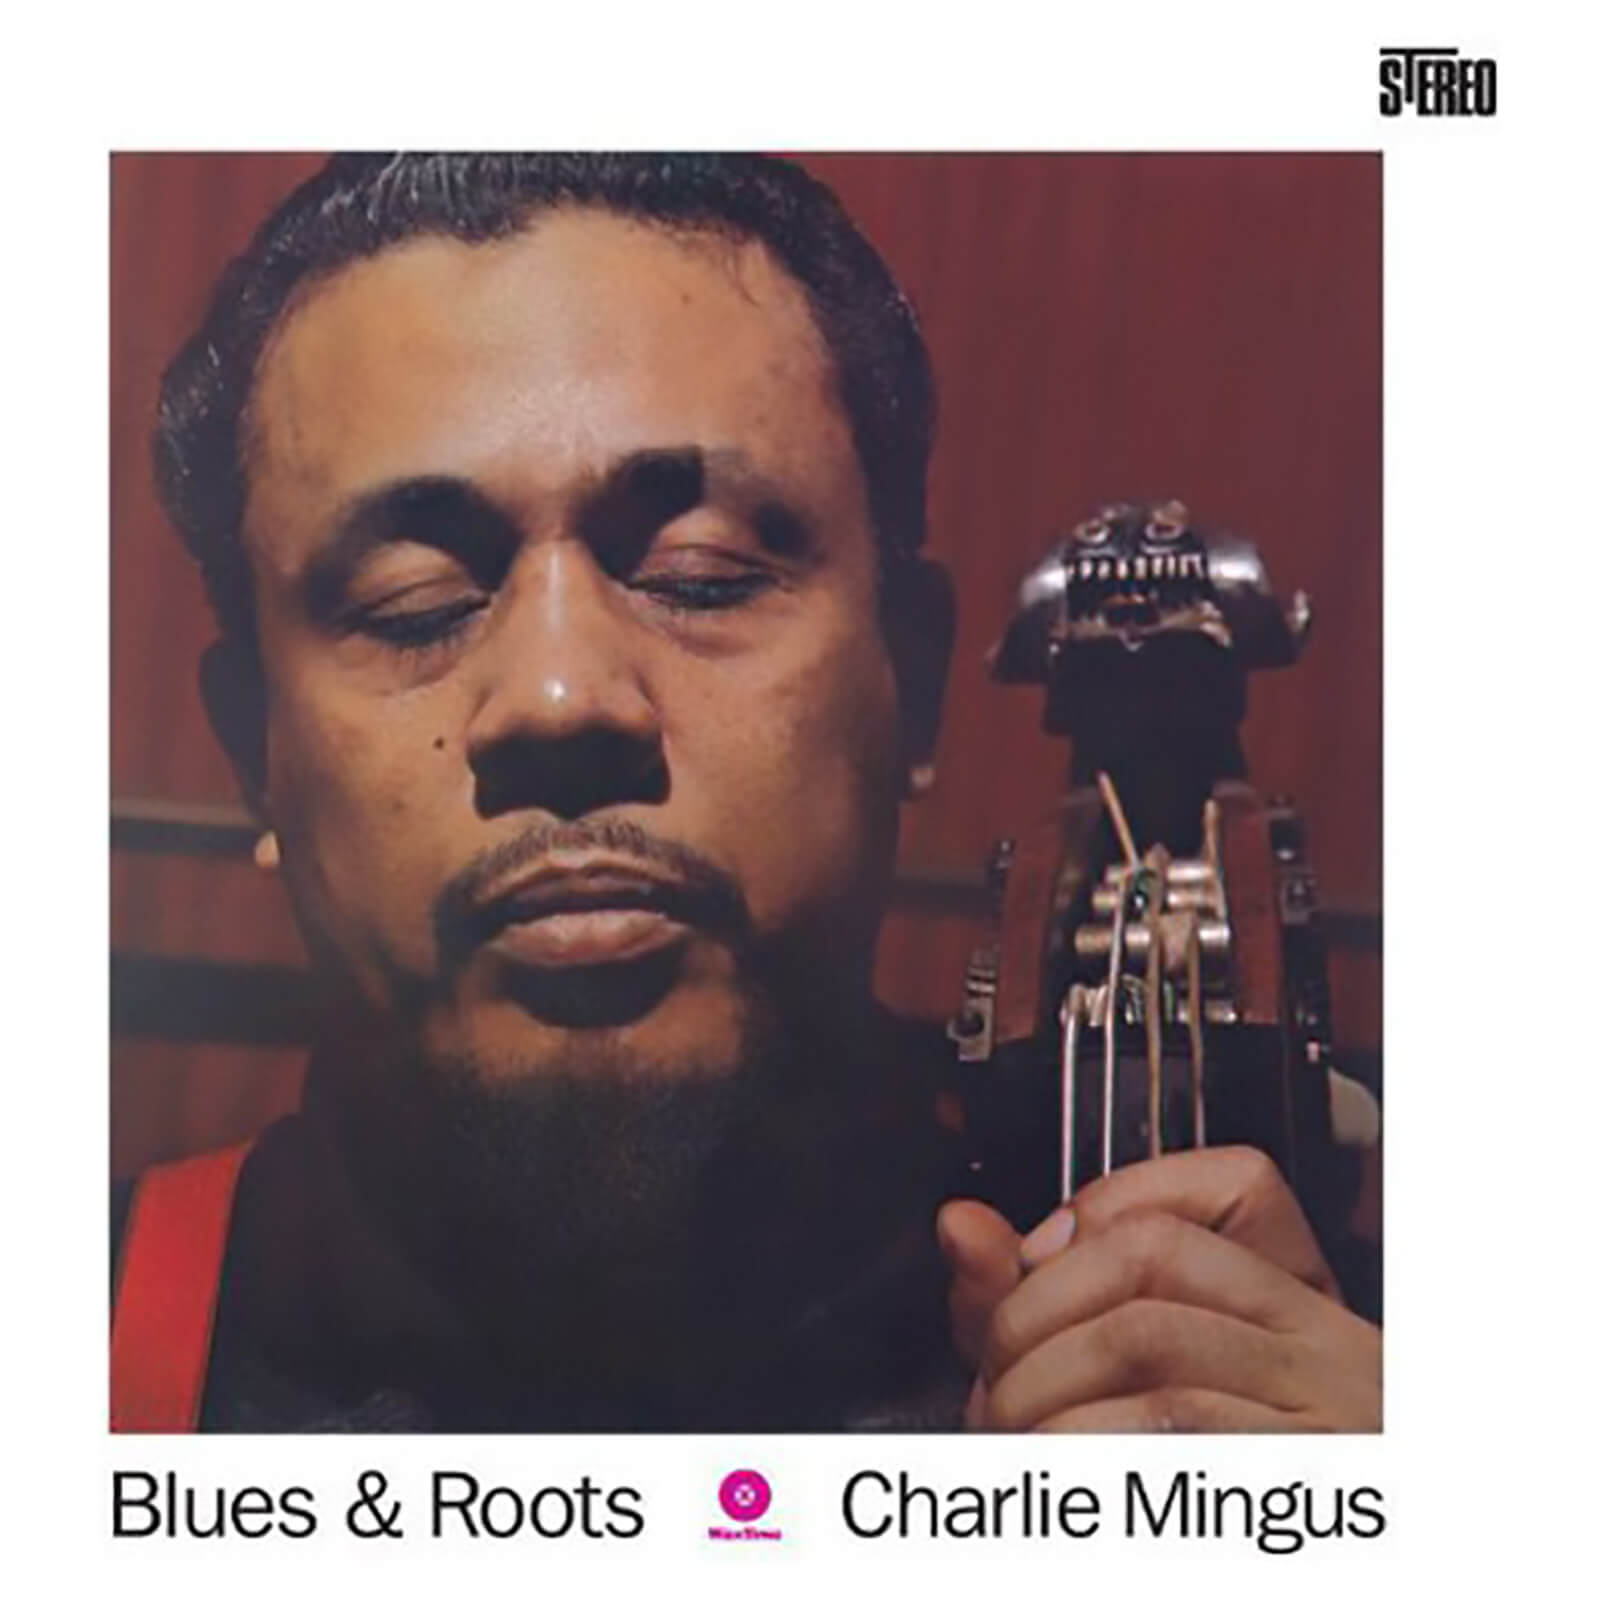 Charles Mingus - Blues & Roots - Vinyl